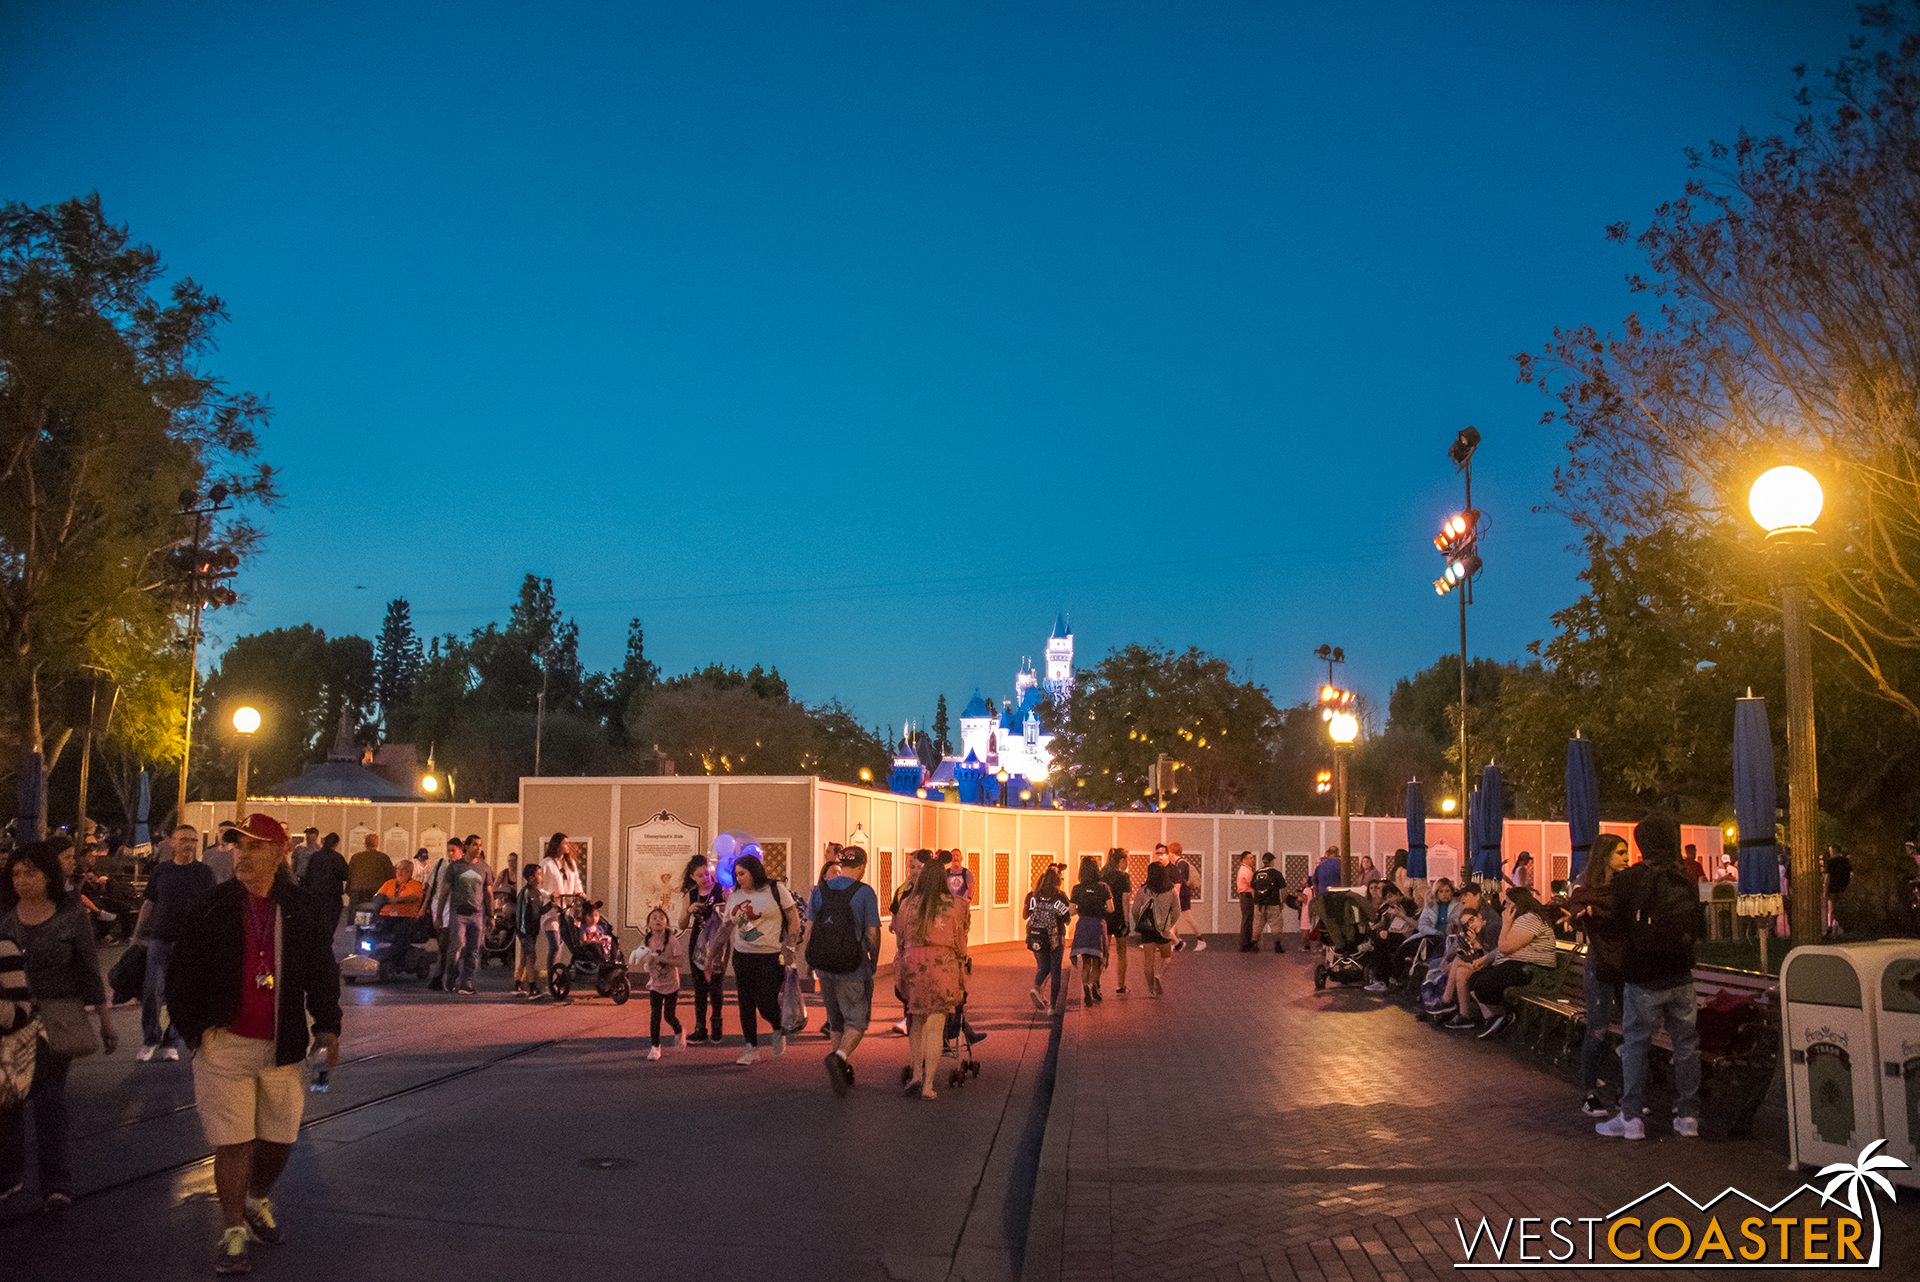 At the other end of Main Street, walls are up around The Hub too.